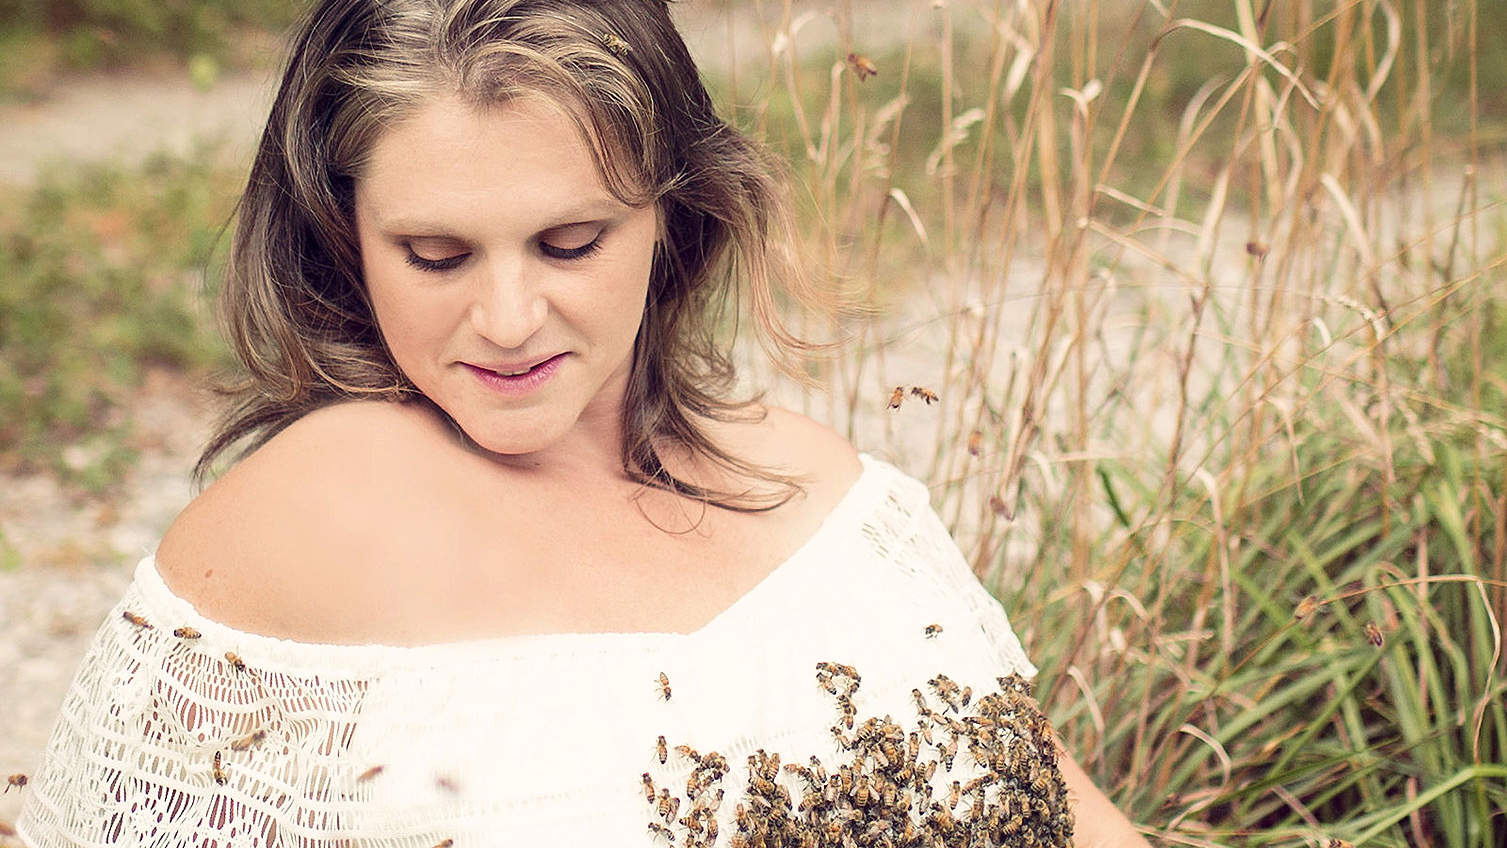 Ohio Woman Who Posed with 20,000 Bees on Her Belly in Maternity Shoot Suffers Stillbirth